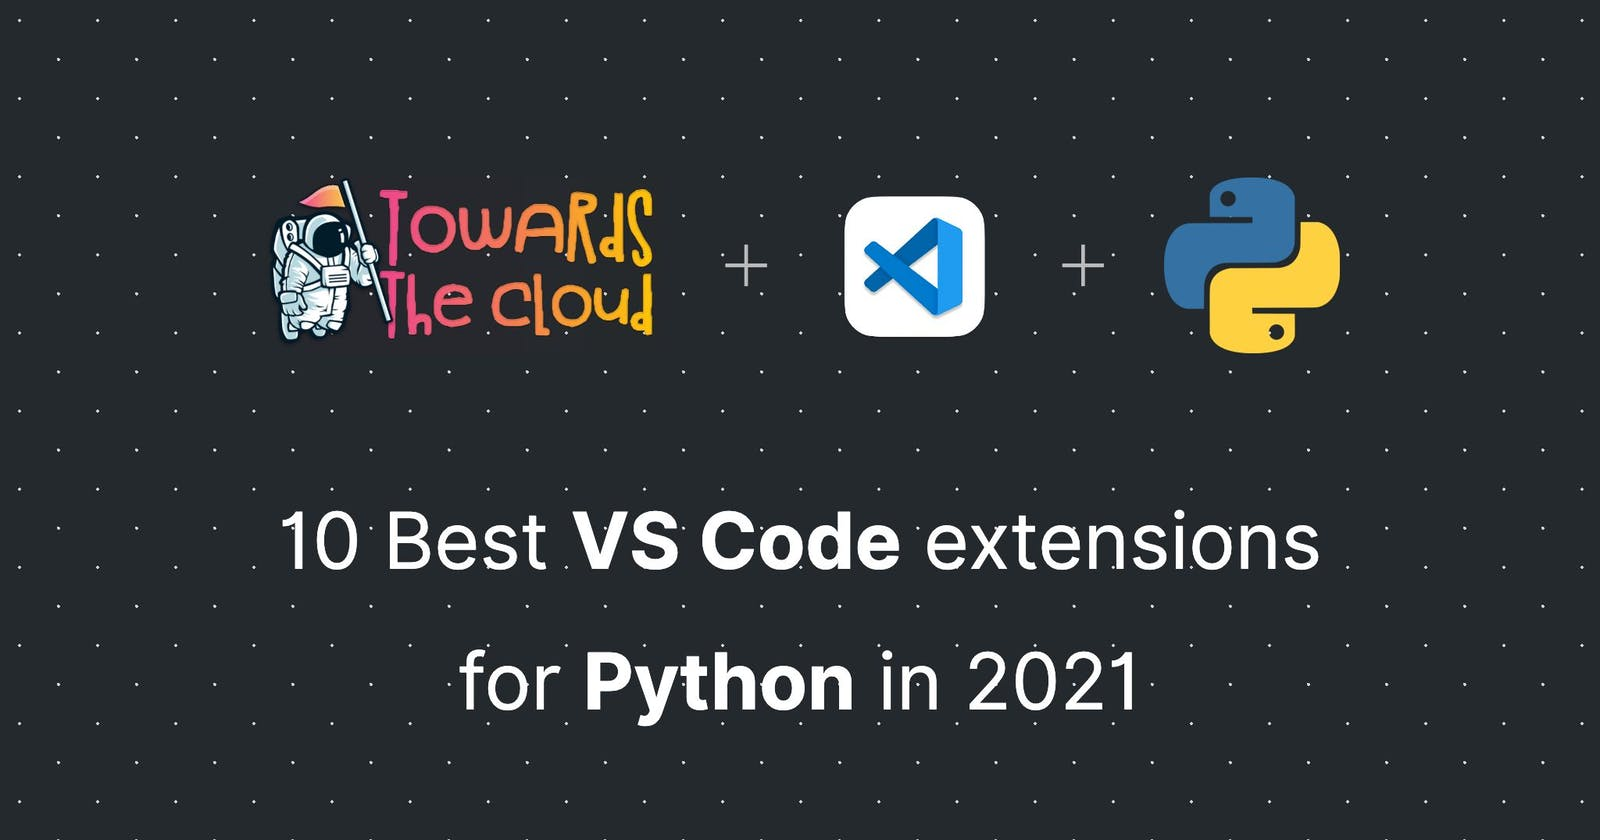 10 Best VS Code extensions for Python in 2021